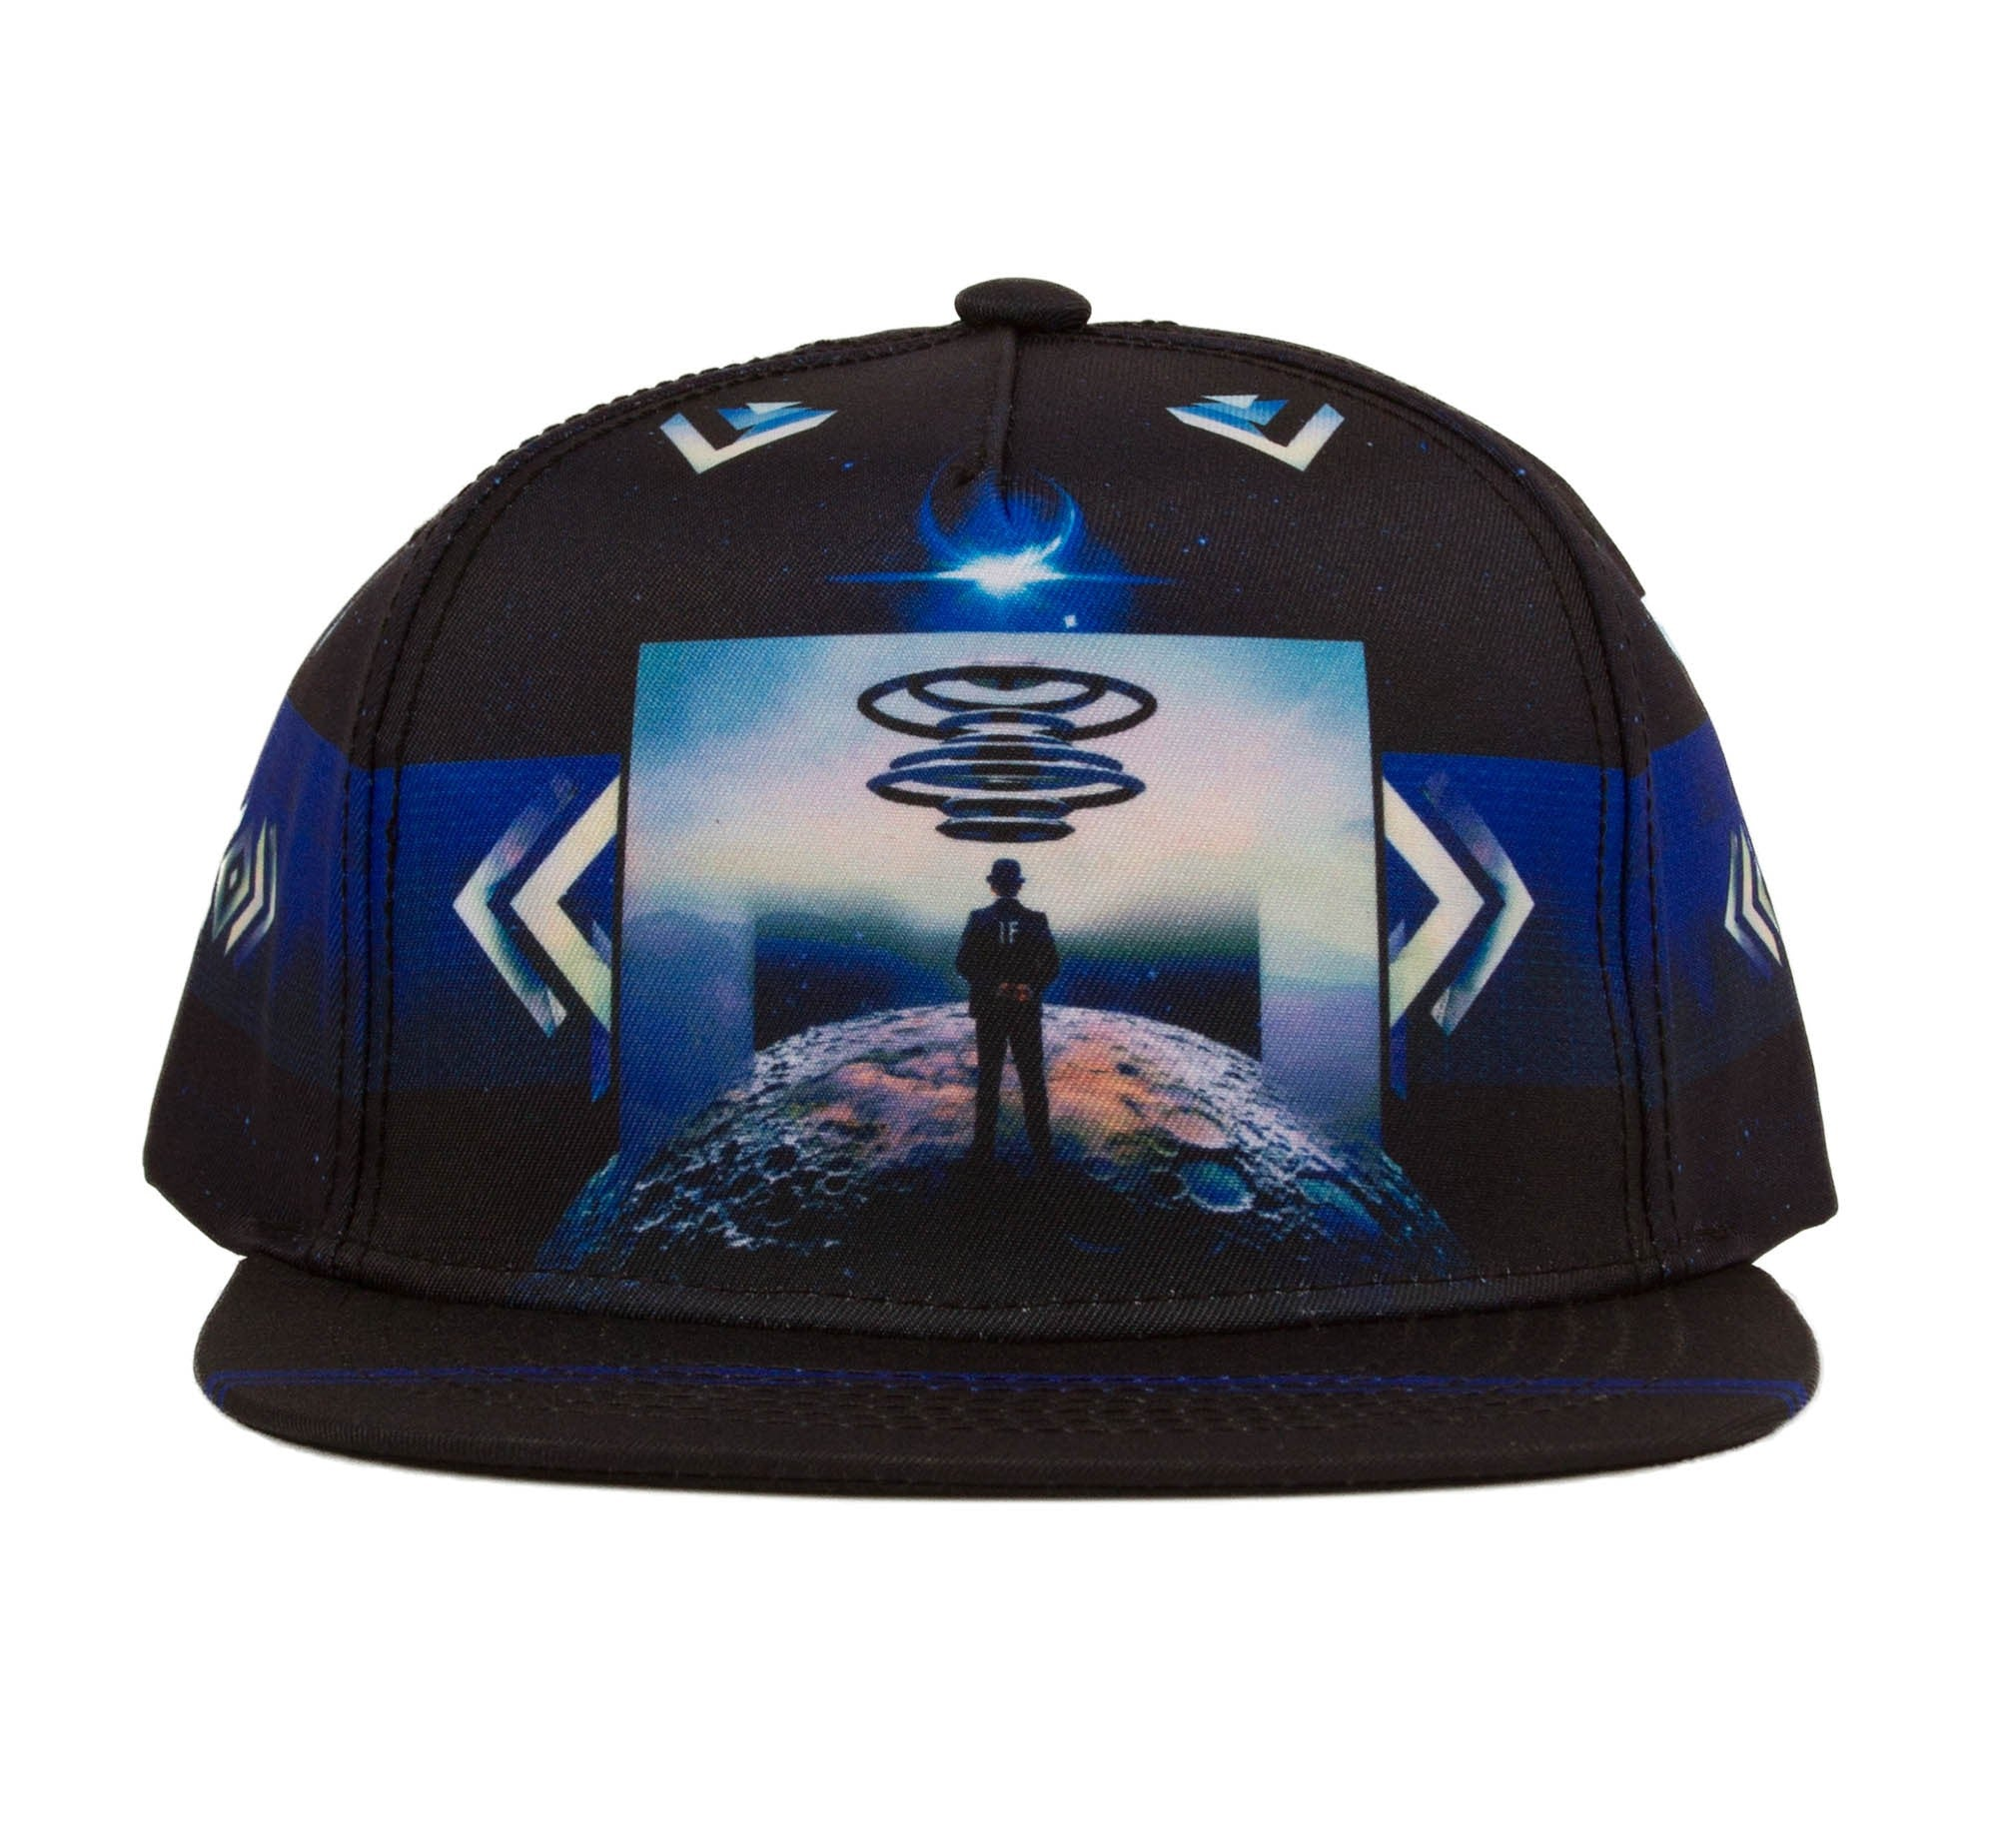 Imaginary Foundation - Axiom Snapback - The Giant Peach